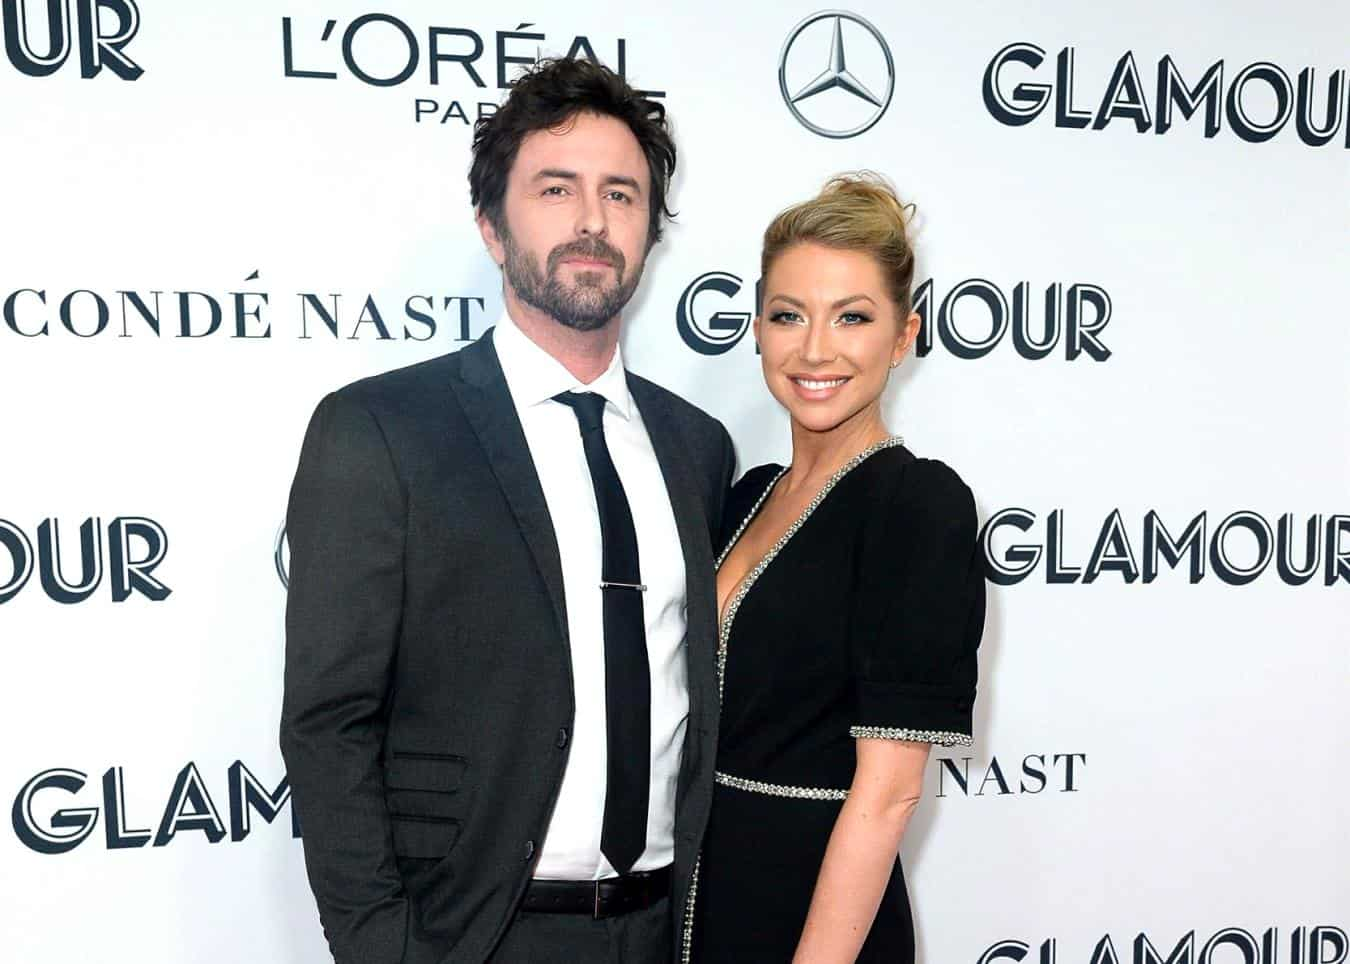 PHOTOS: Stassi Schroeder Shares First Text Messages She Got From Husband Beau Clark Plus Beau Reveals When They Conceived Their Baby